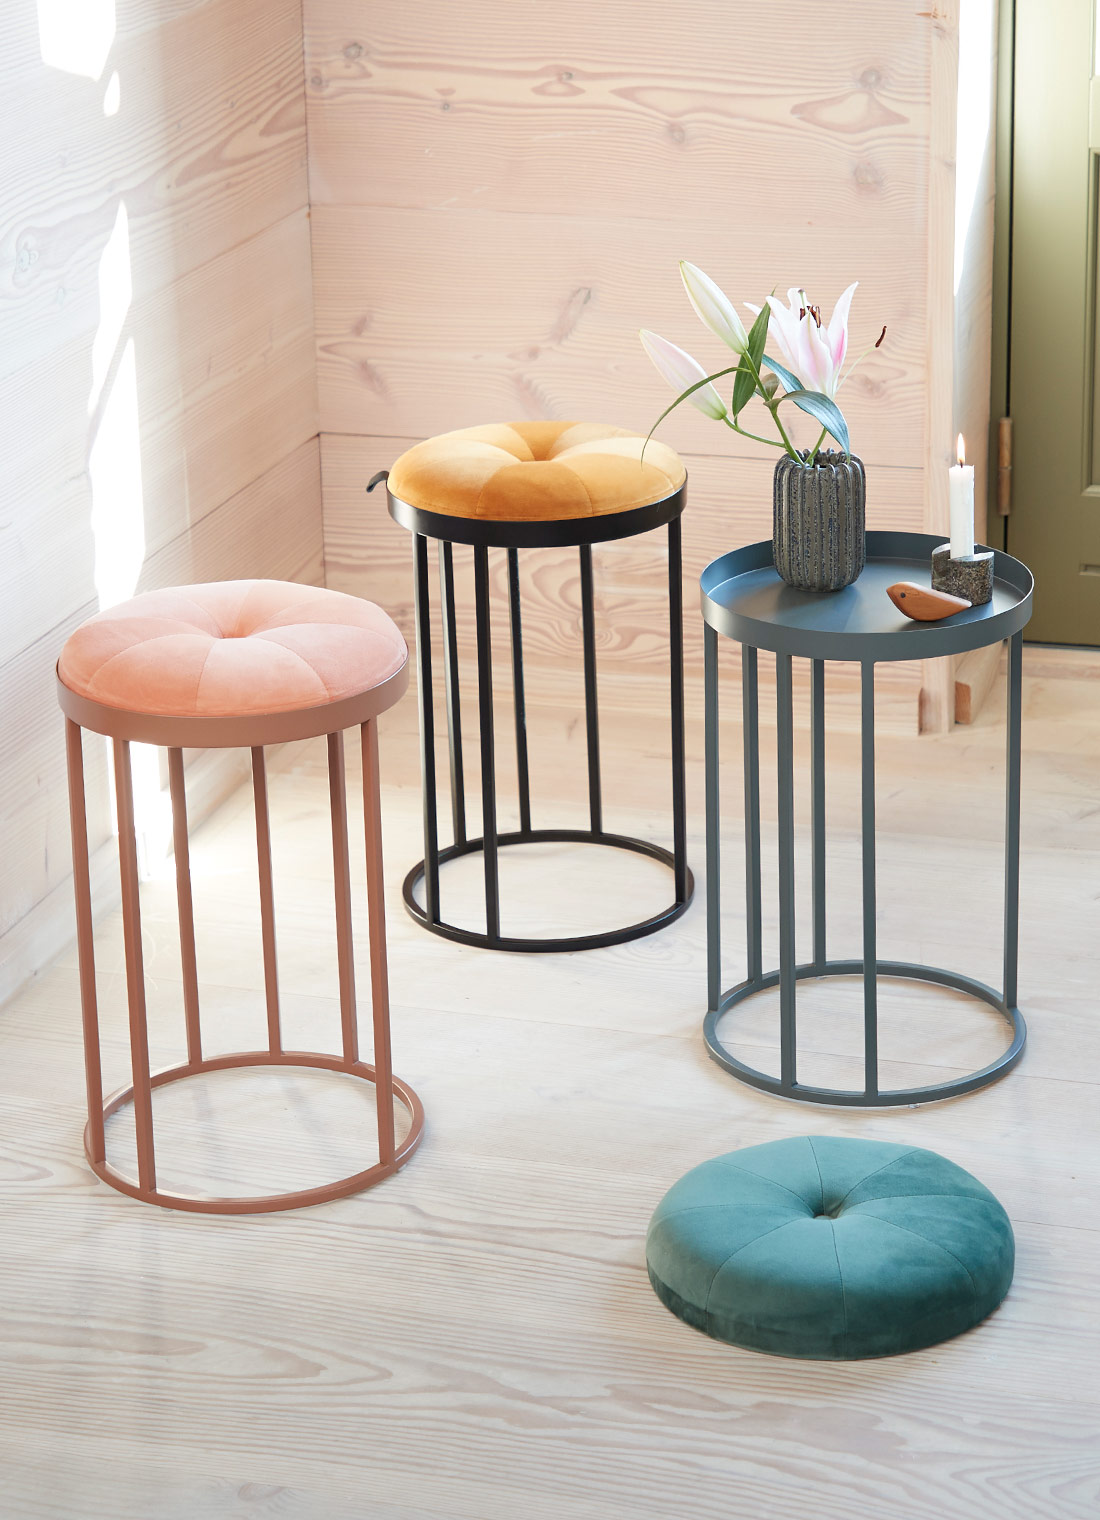 Daisy stool with two functionalities